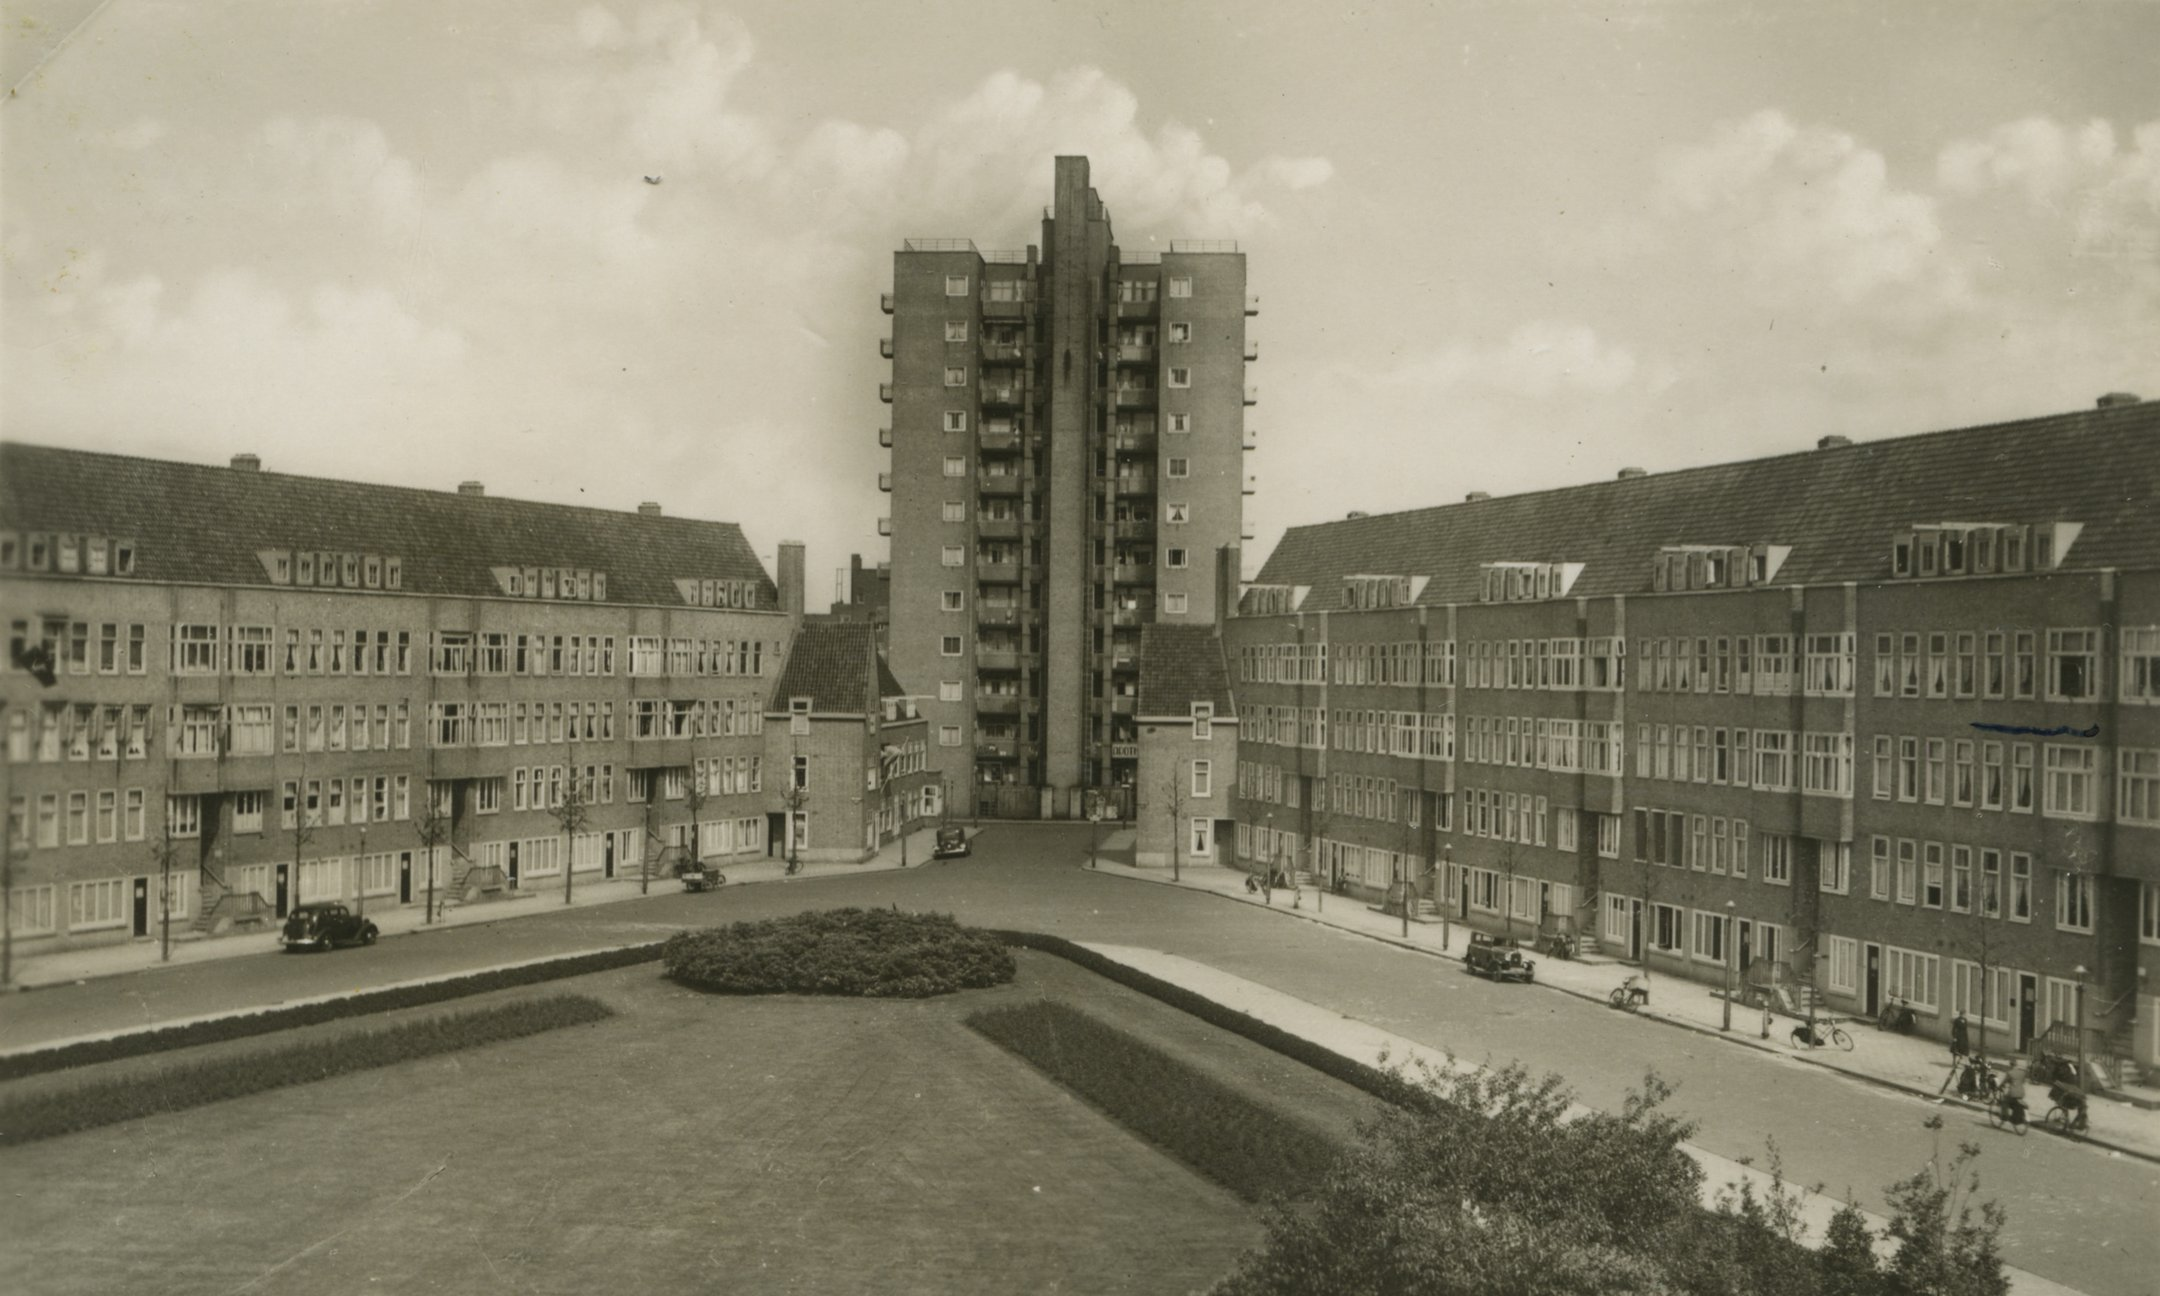 Postcard from the 1930s, showing Merwedeplein. With a pen is indicated (right, centre) where the Frank family lives.